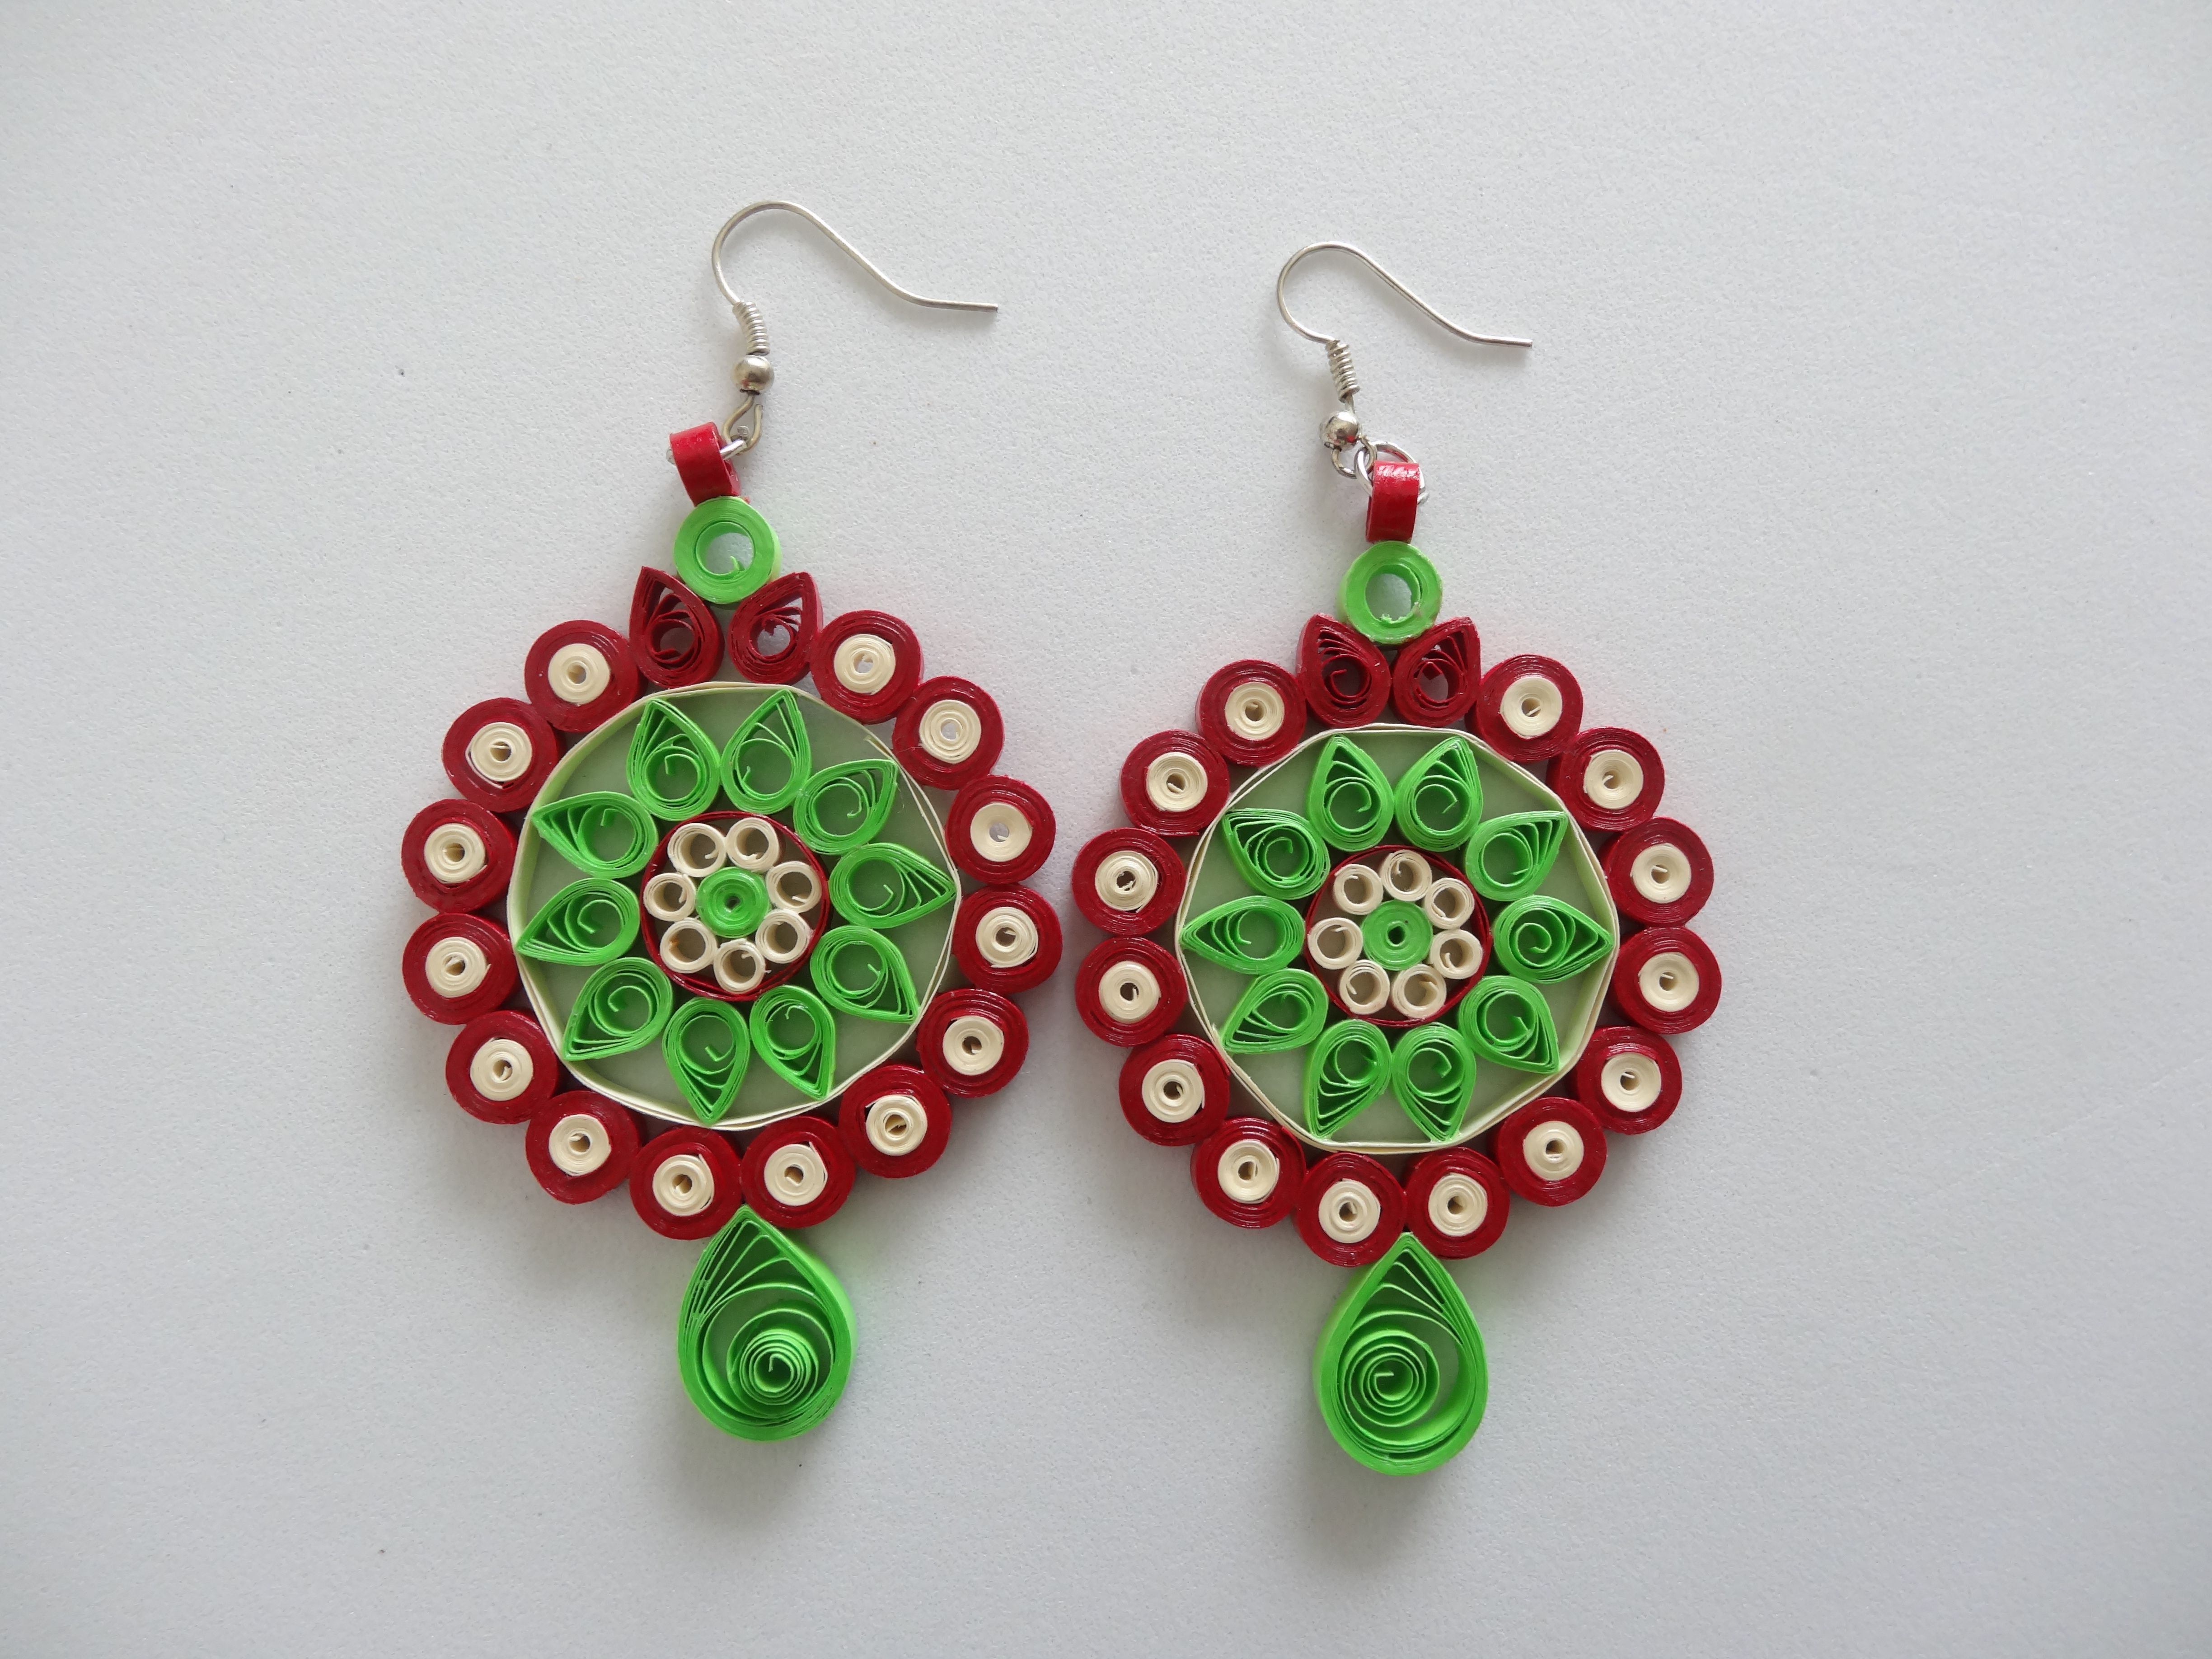 Quilling Earrings Designs Latest : All handmade, paper quilled earrings. Quilling Accessories Pinter?